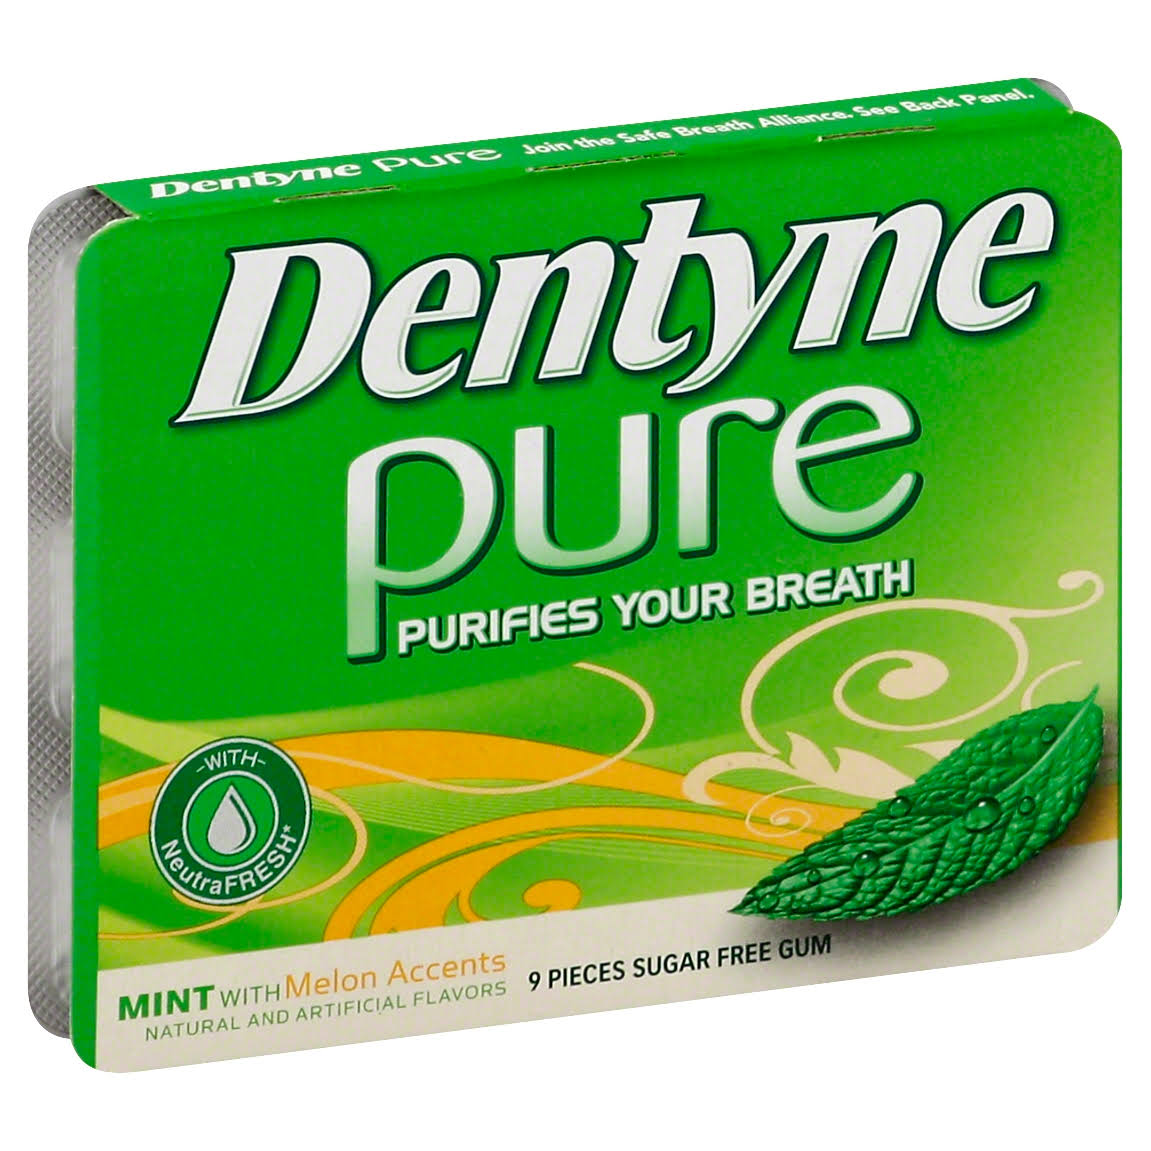 Dentyne Pure Gum, Sugar Free, Mint with Melon Accents - 9 pieces